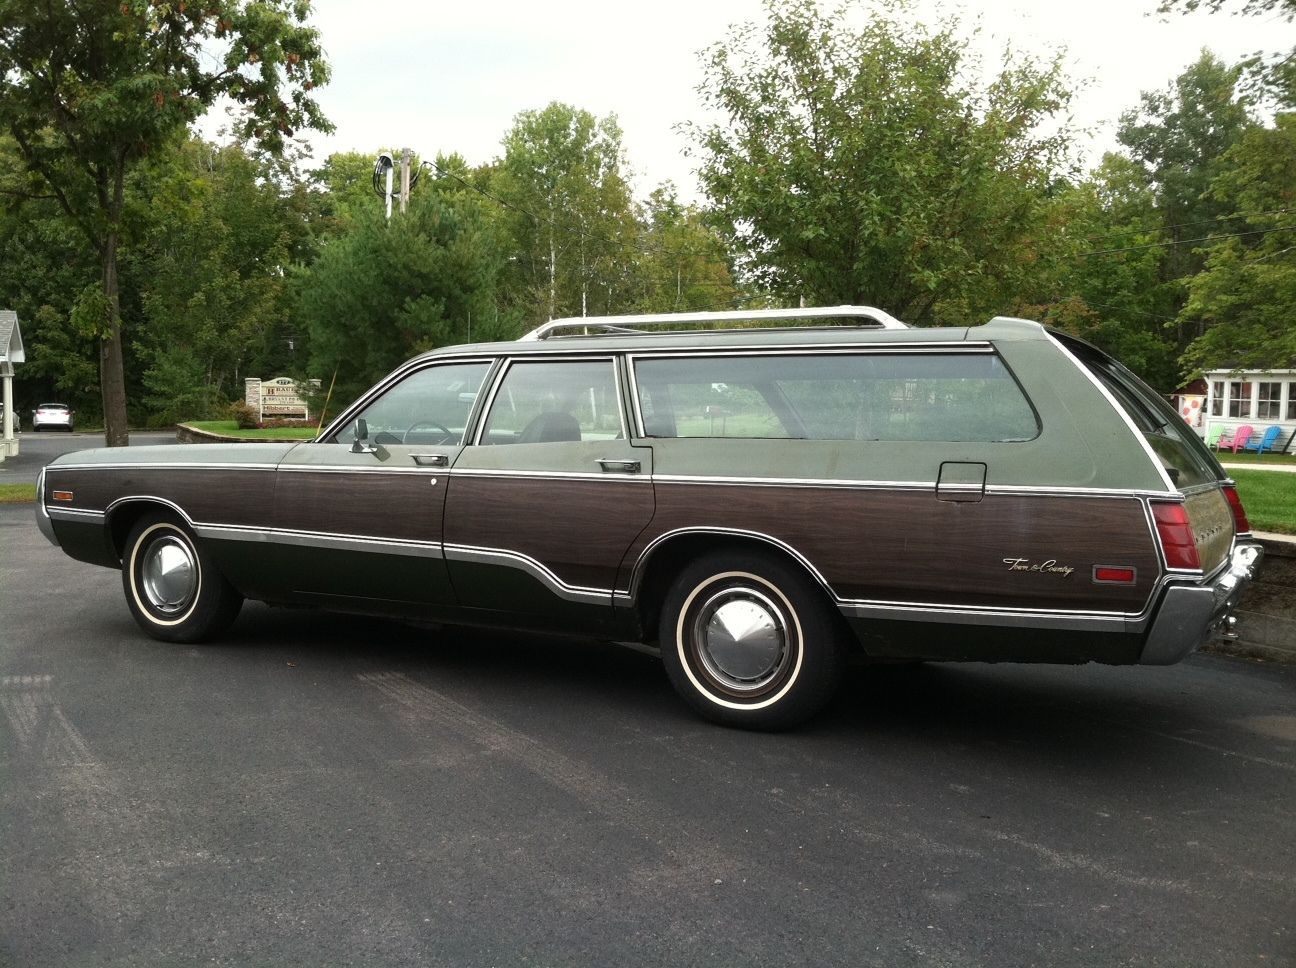 '71 Chrysler Town & Country Station Wagon